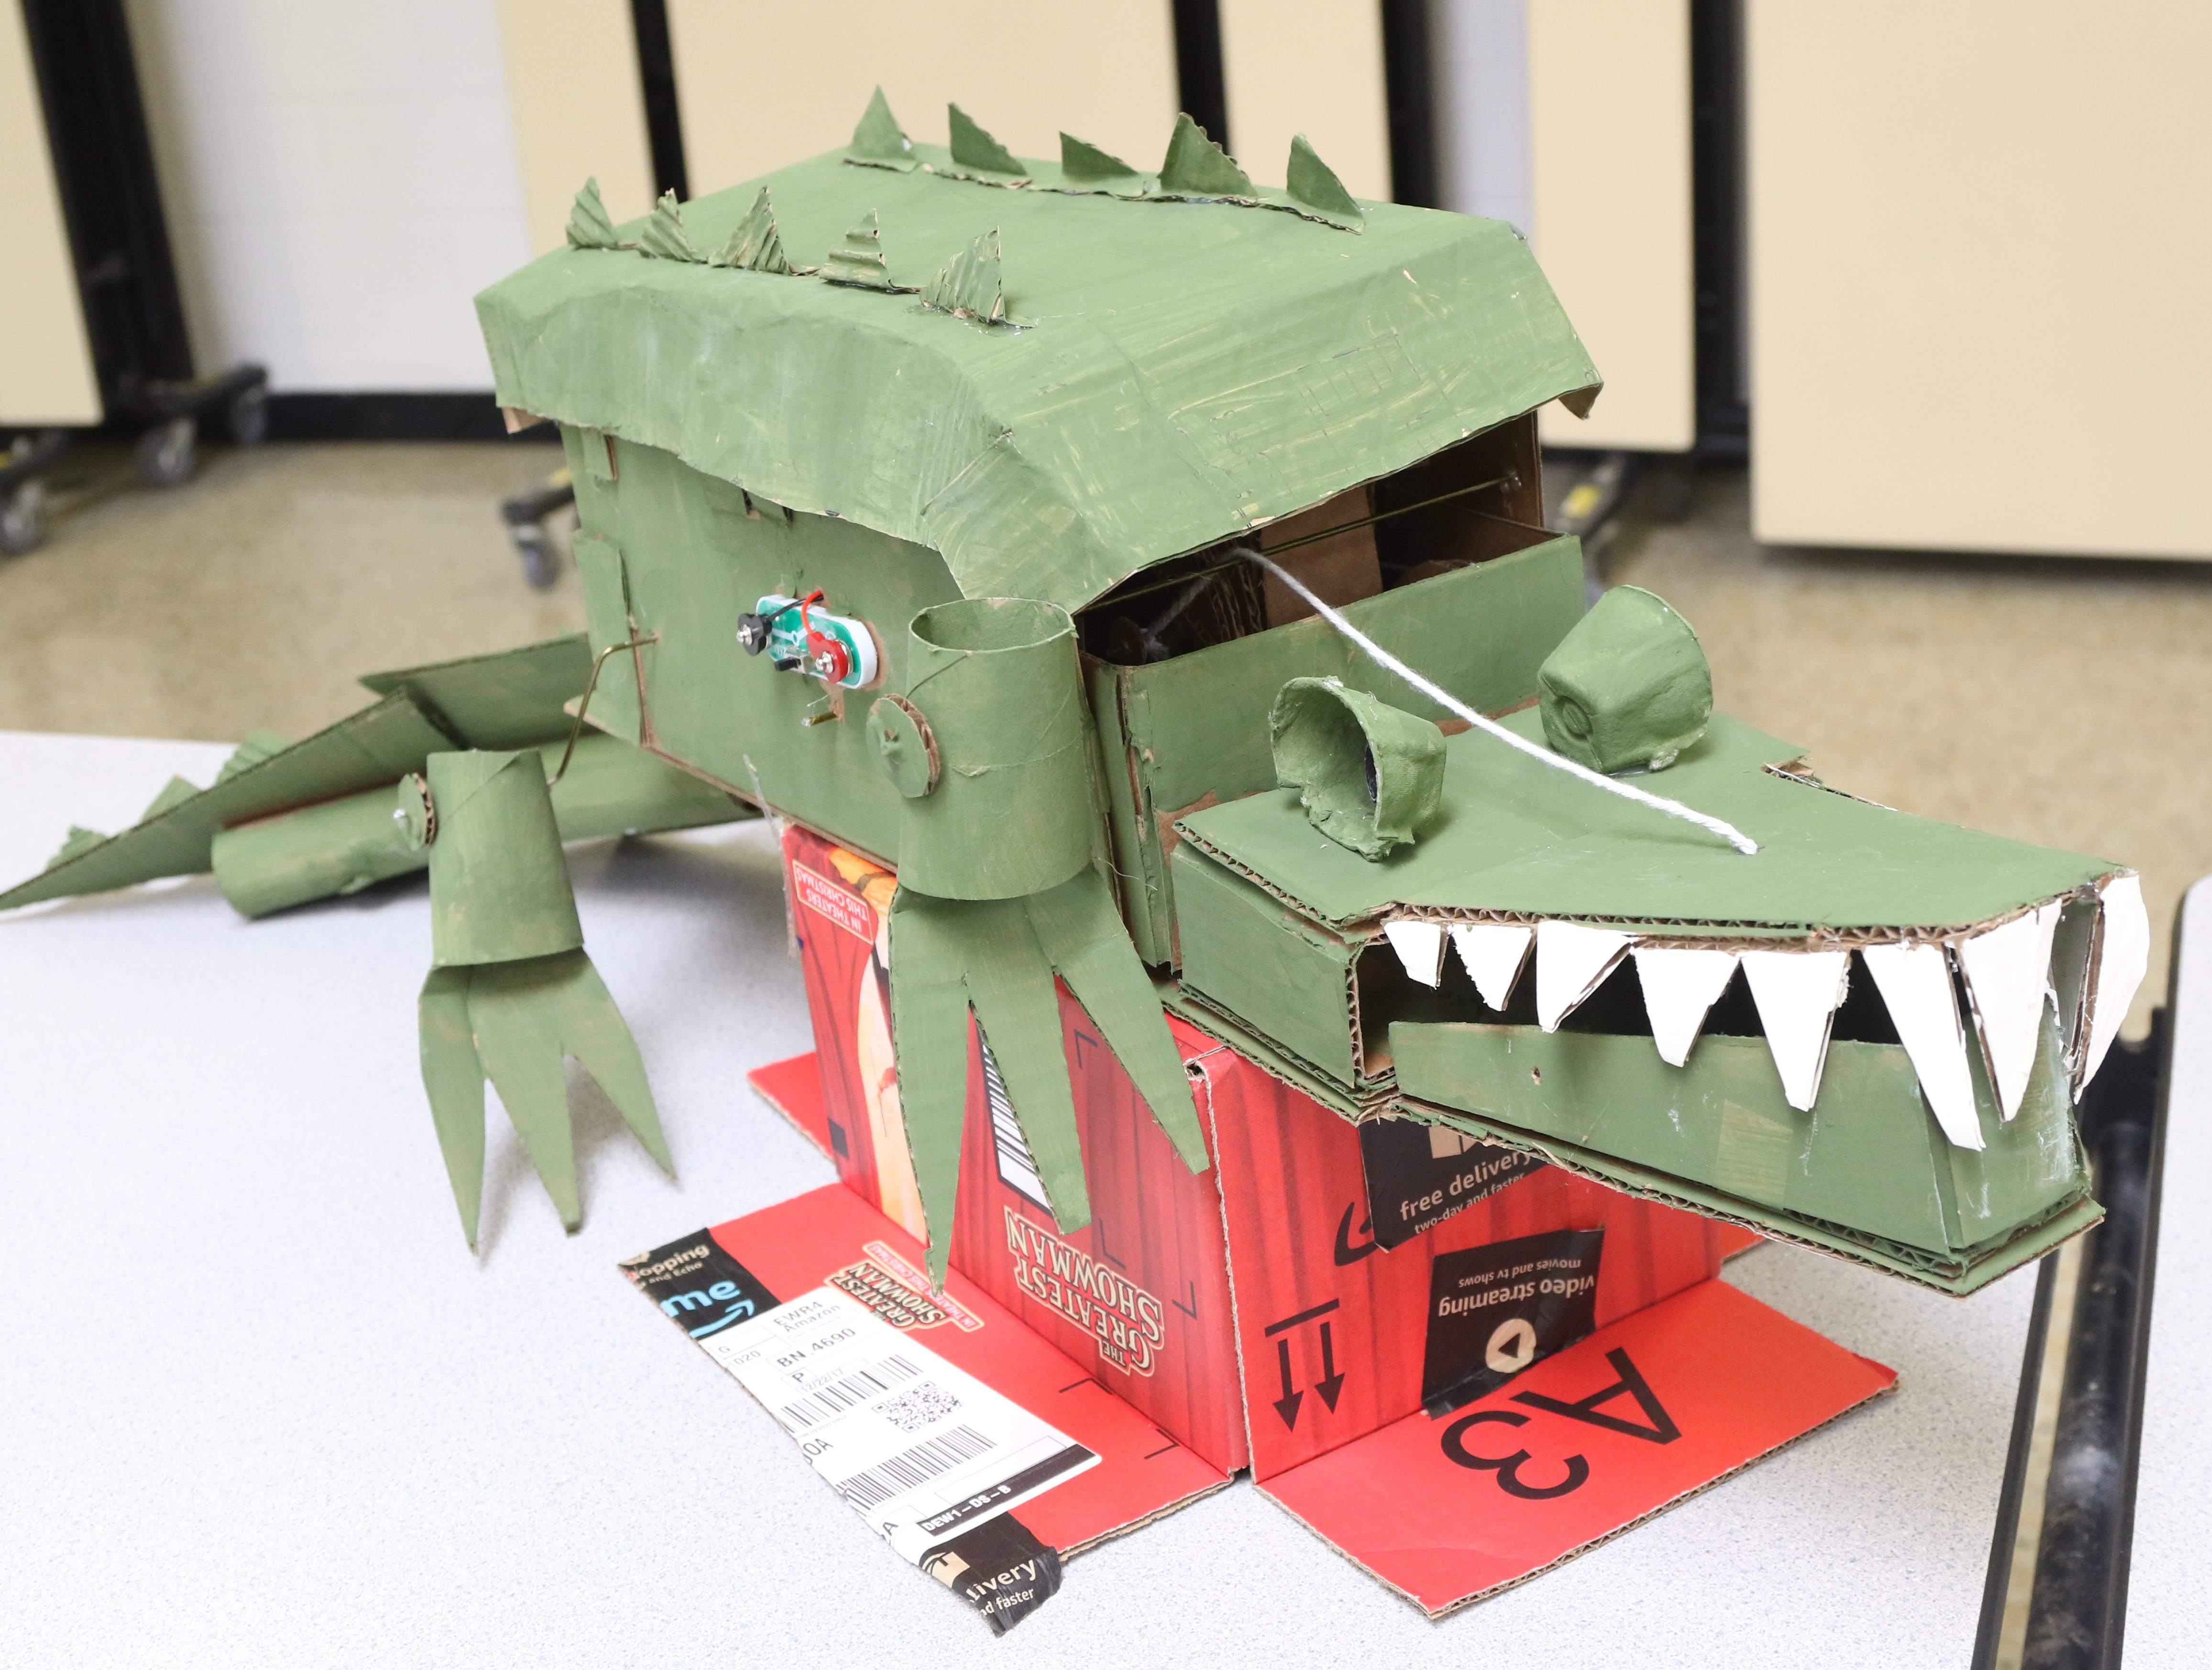 A cardboard alligator is part of the Cardboard Animal-a-thon at Ramapo HS where engineering students work on and display their projects, making mechanical animals out of cardboard. They also helped younger students work on projects during the event held at Ramapo HS on February 9, 2019.